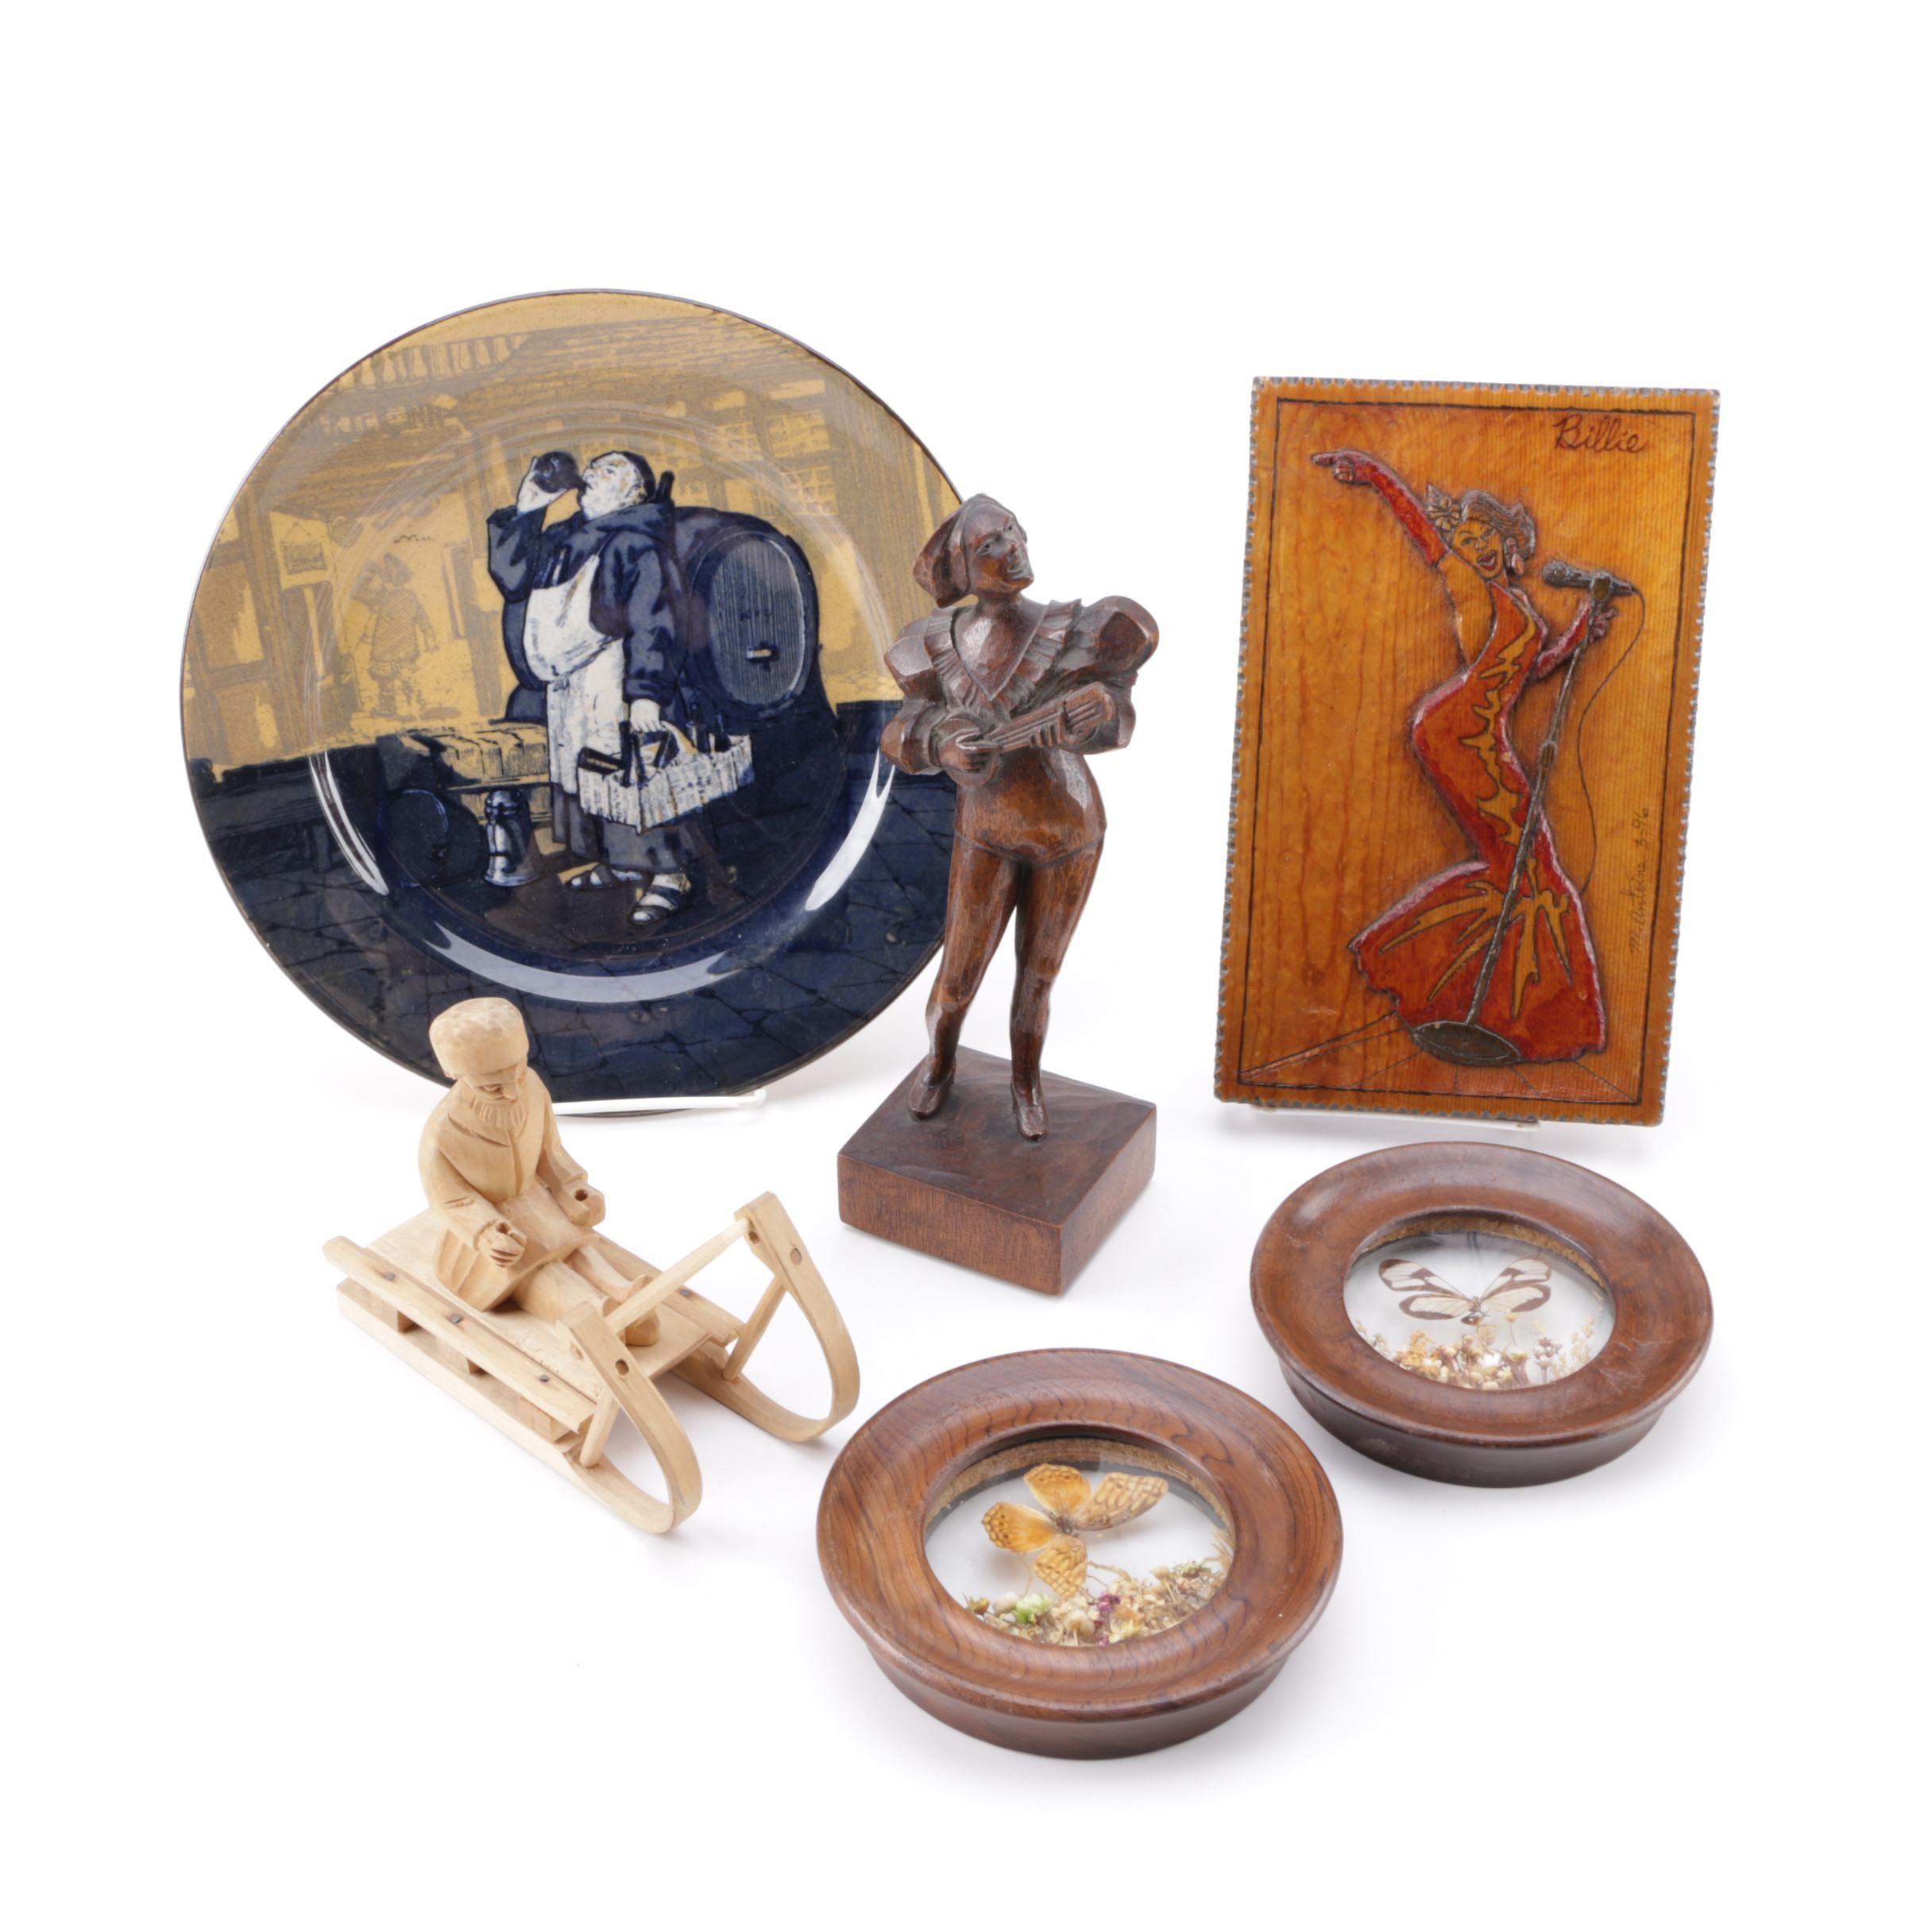 """Royal Doulton """"Monks in the Cellar"""" Plate with Assorted Wooden Decor"""